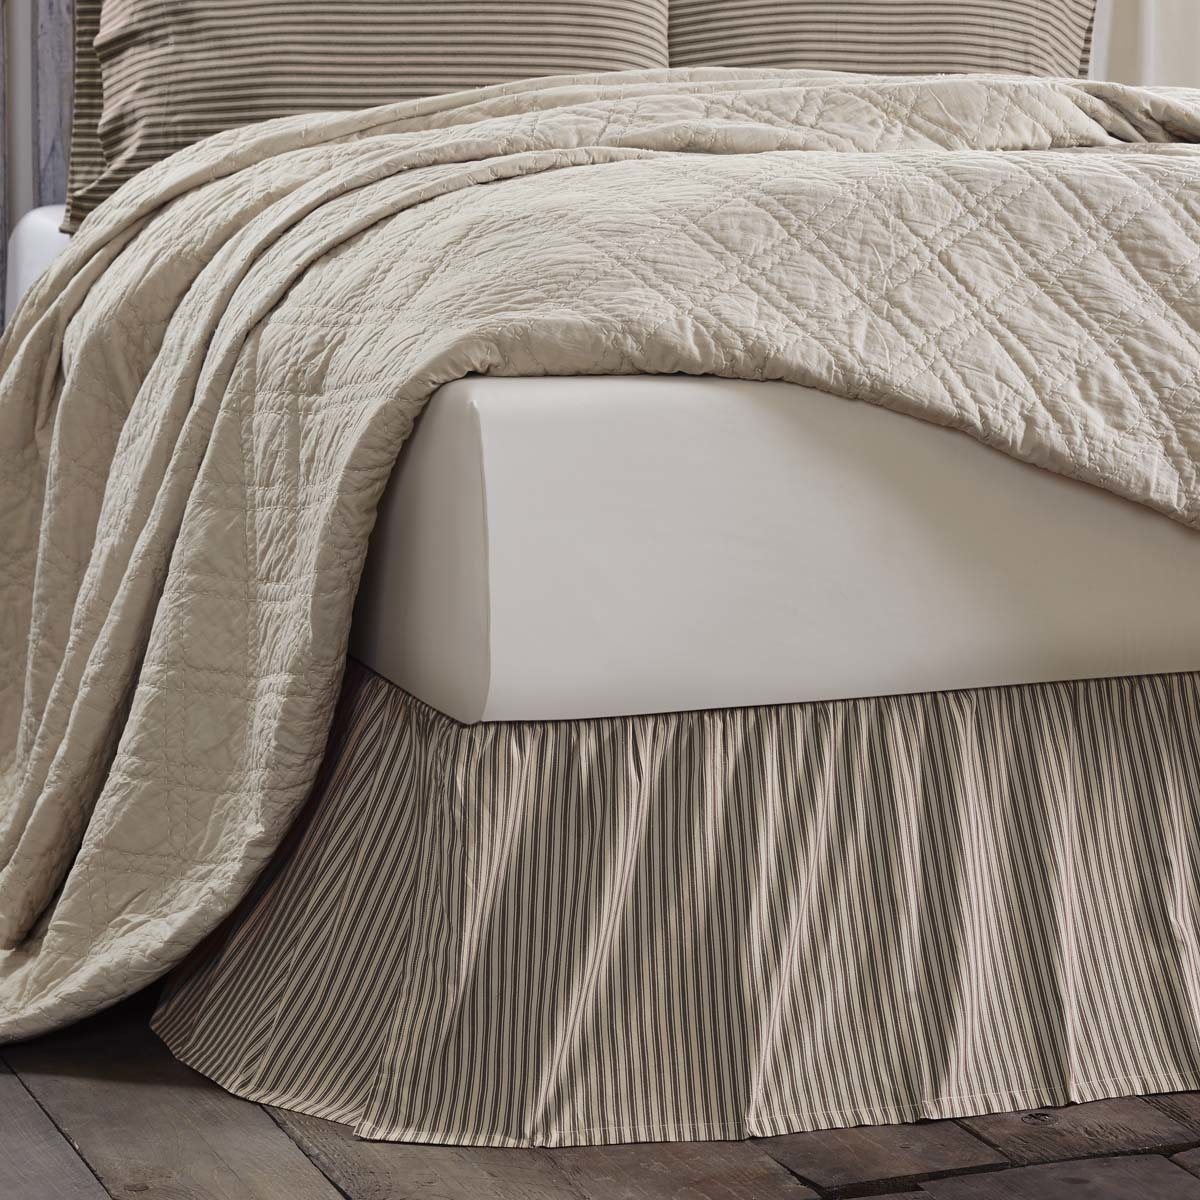 Farmhouse Bedding Kendra Stripe Bed Skirt